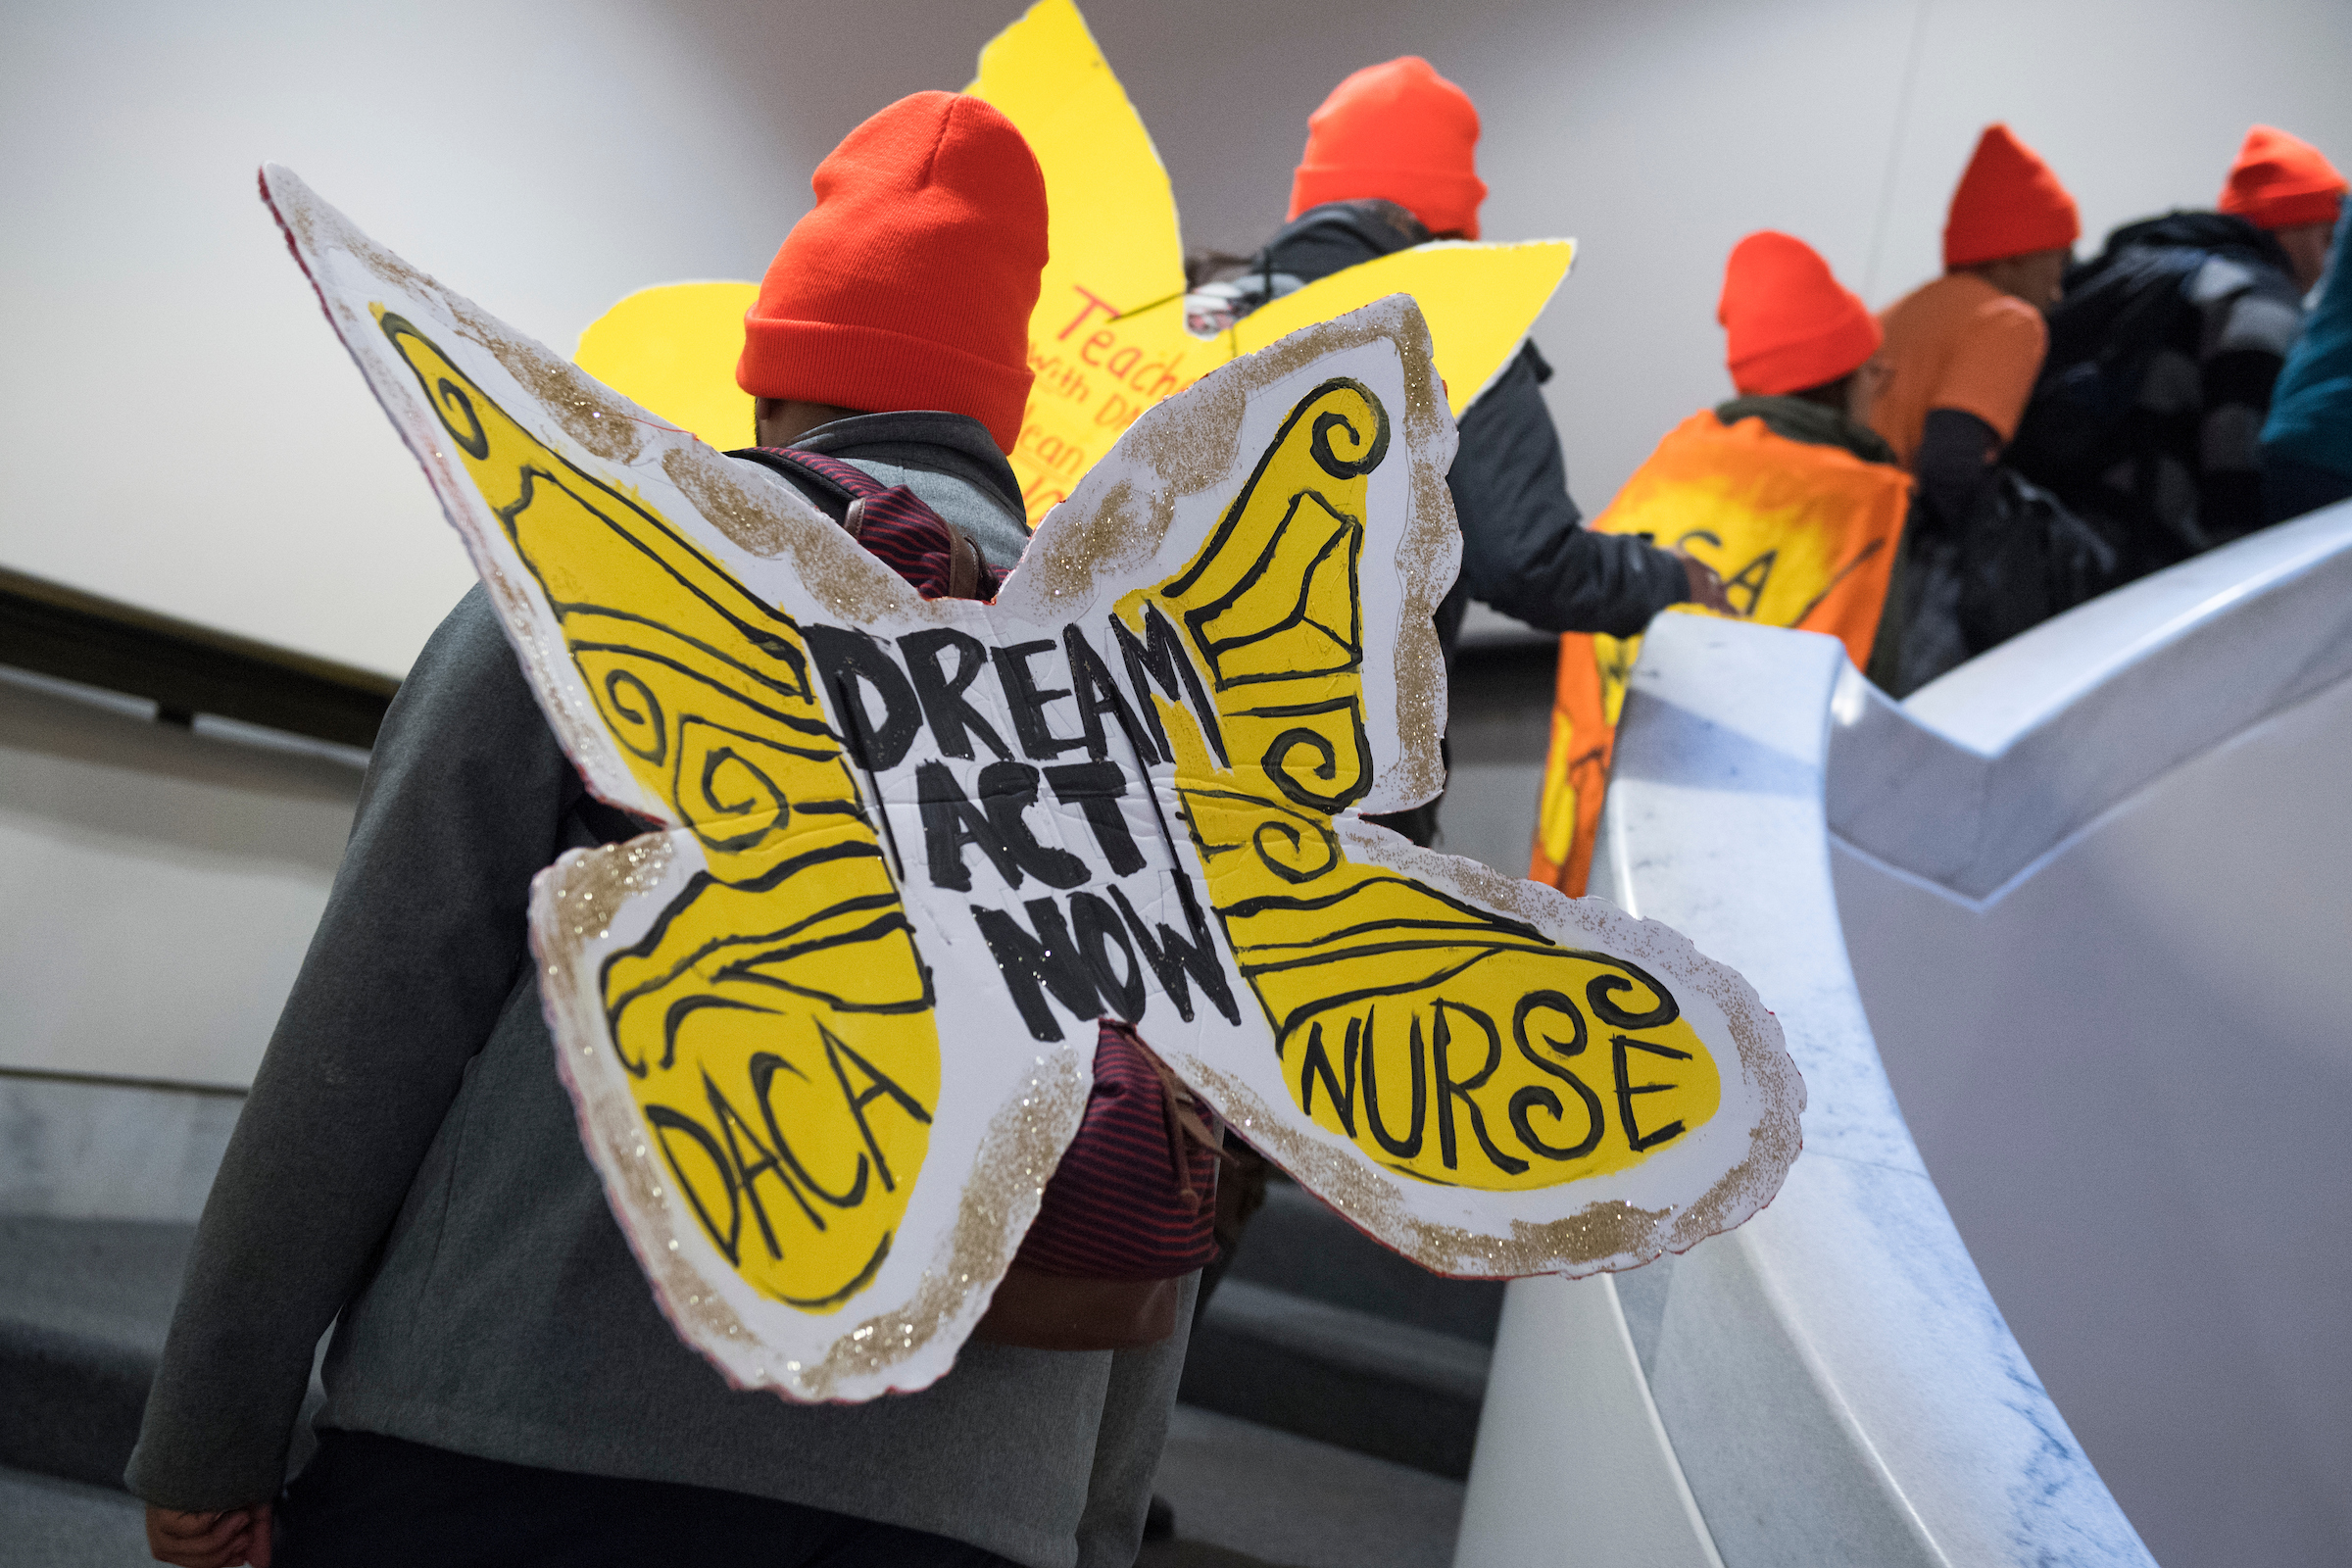 Demonstrators with United We Dream and others rally in the atrium of Hart Building on January 16, 2018, to call on congress to pass the Dream Act, that protects young immigrants from deportation. (Photo By Tom Williams/CQ Roll Call)